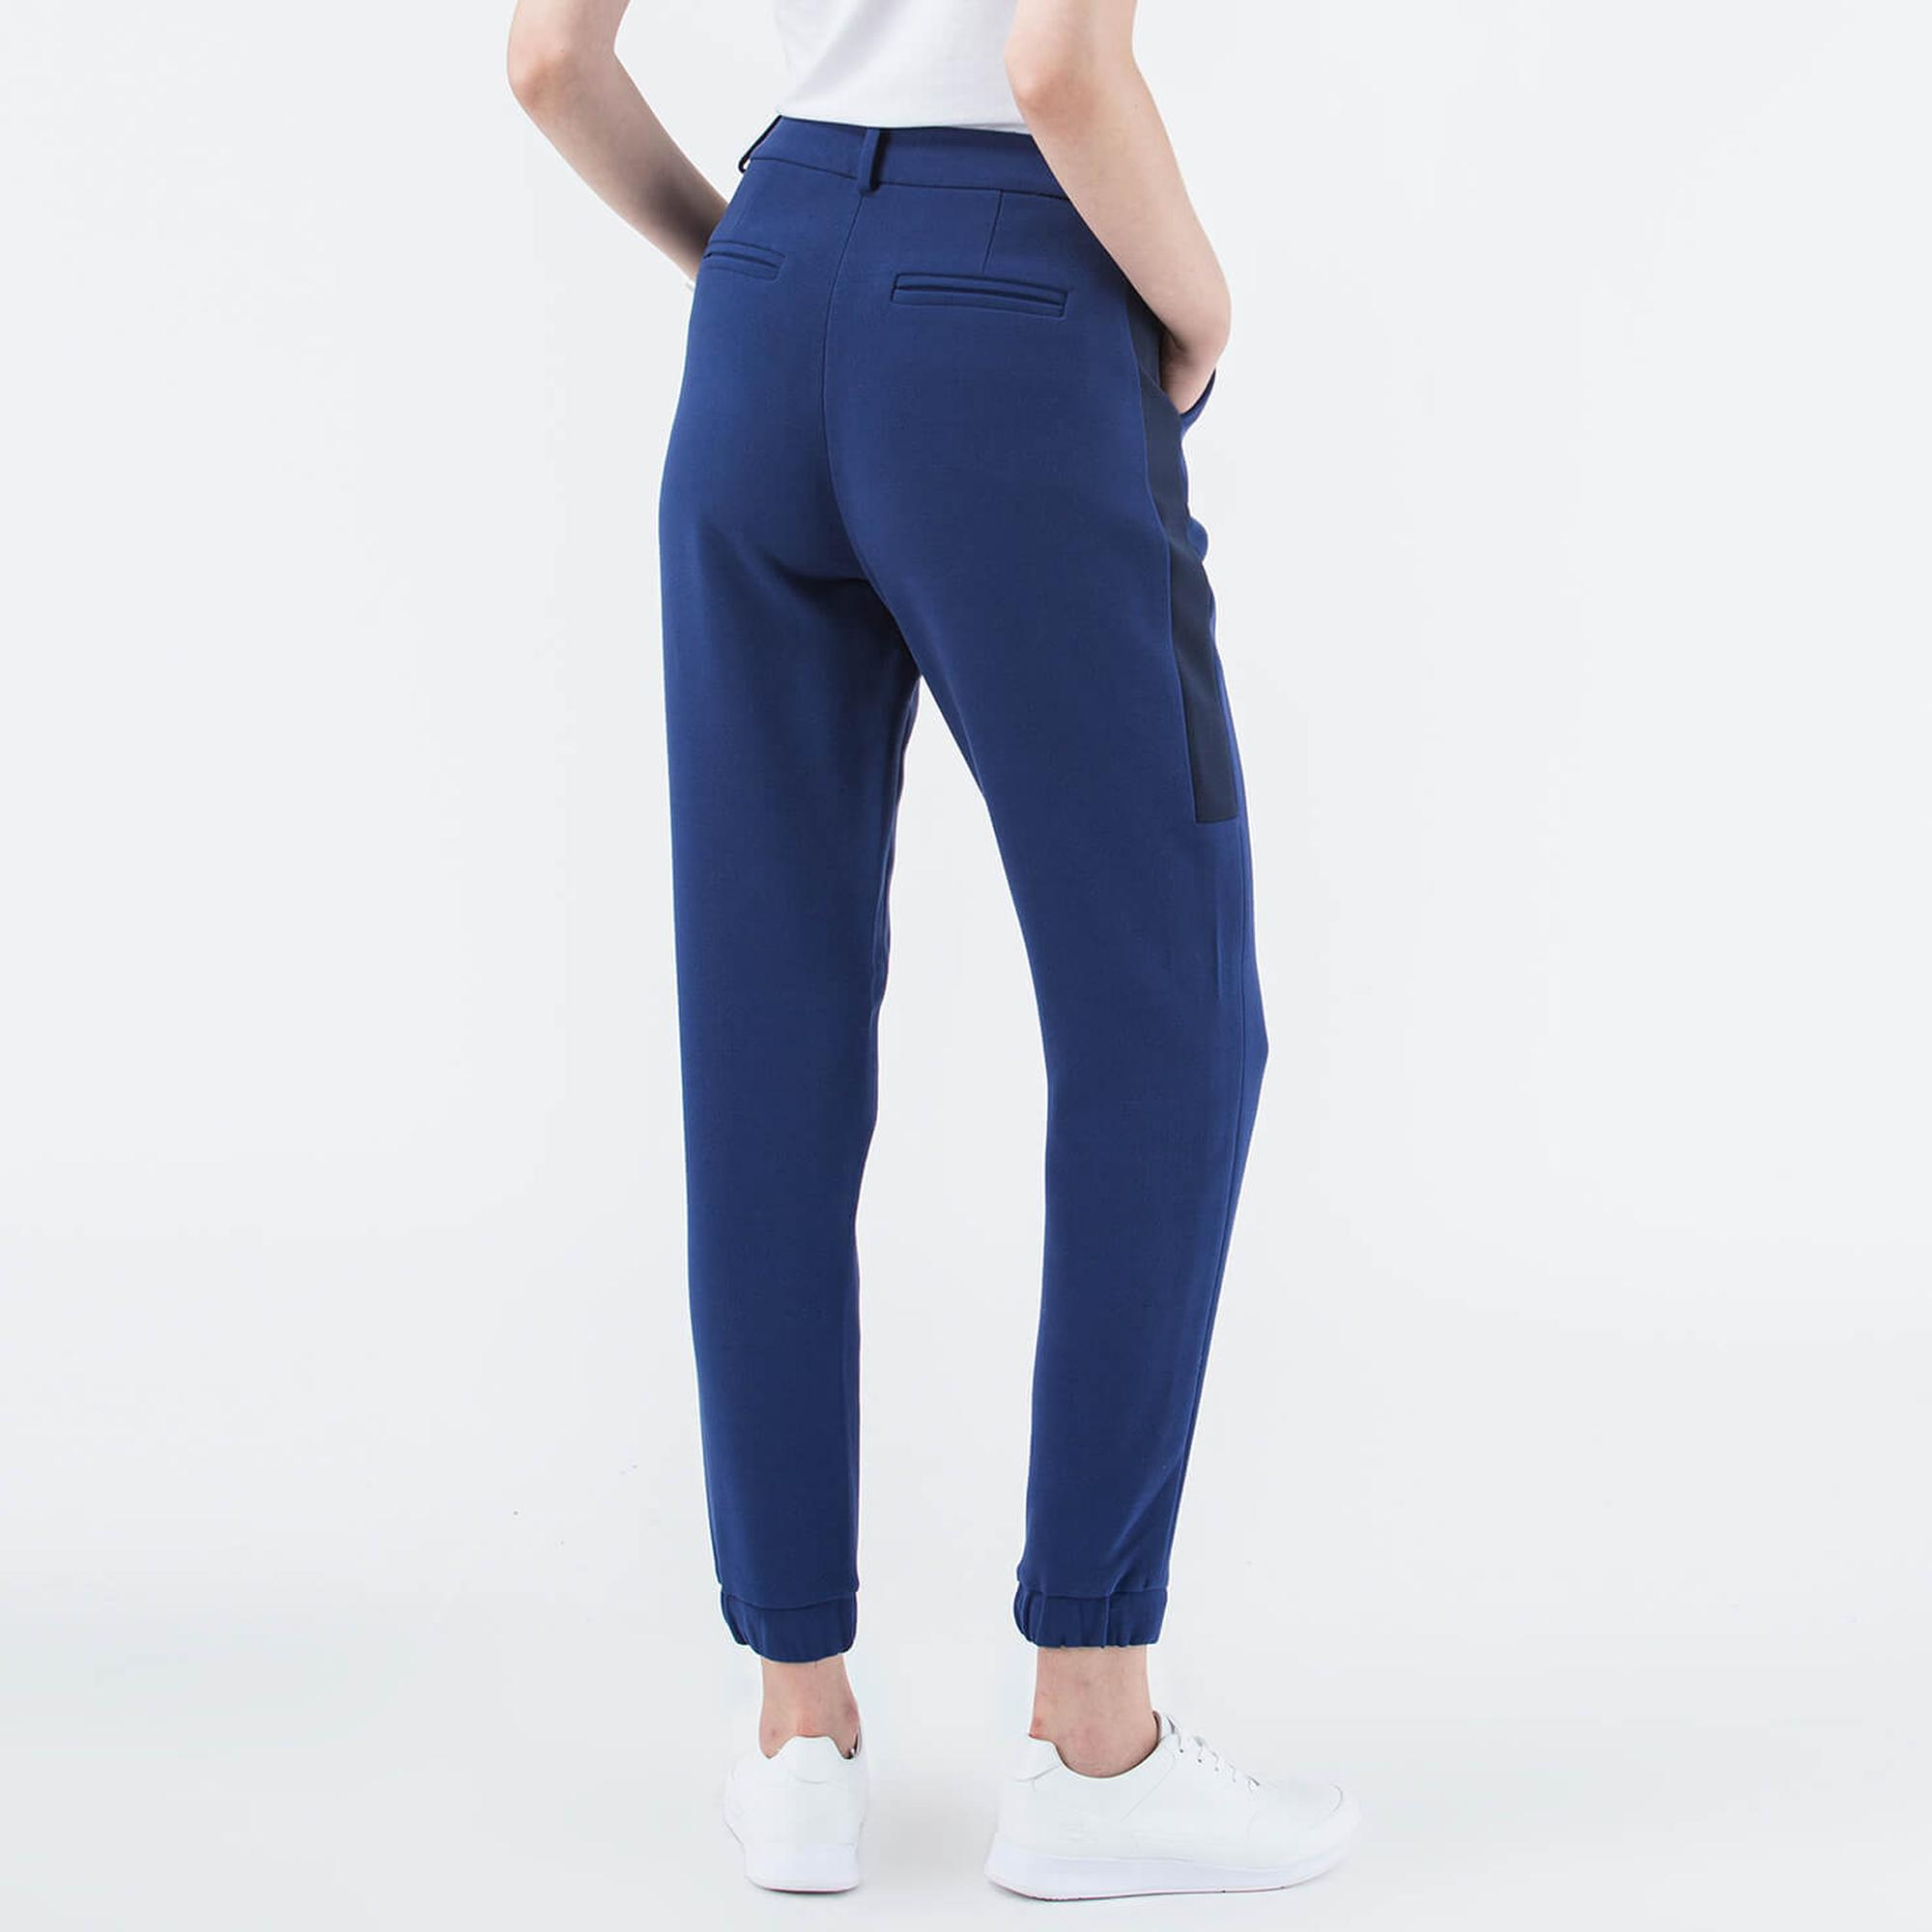 Lacoste L!VE Women's Stretch Jogging Pants